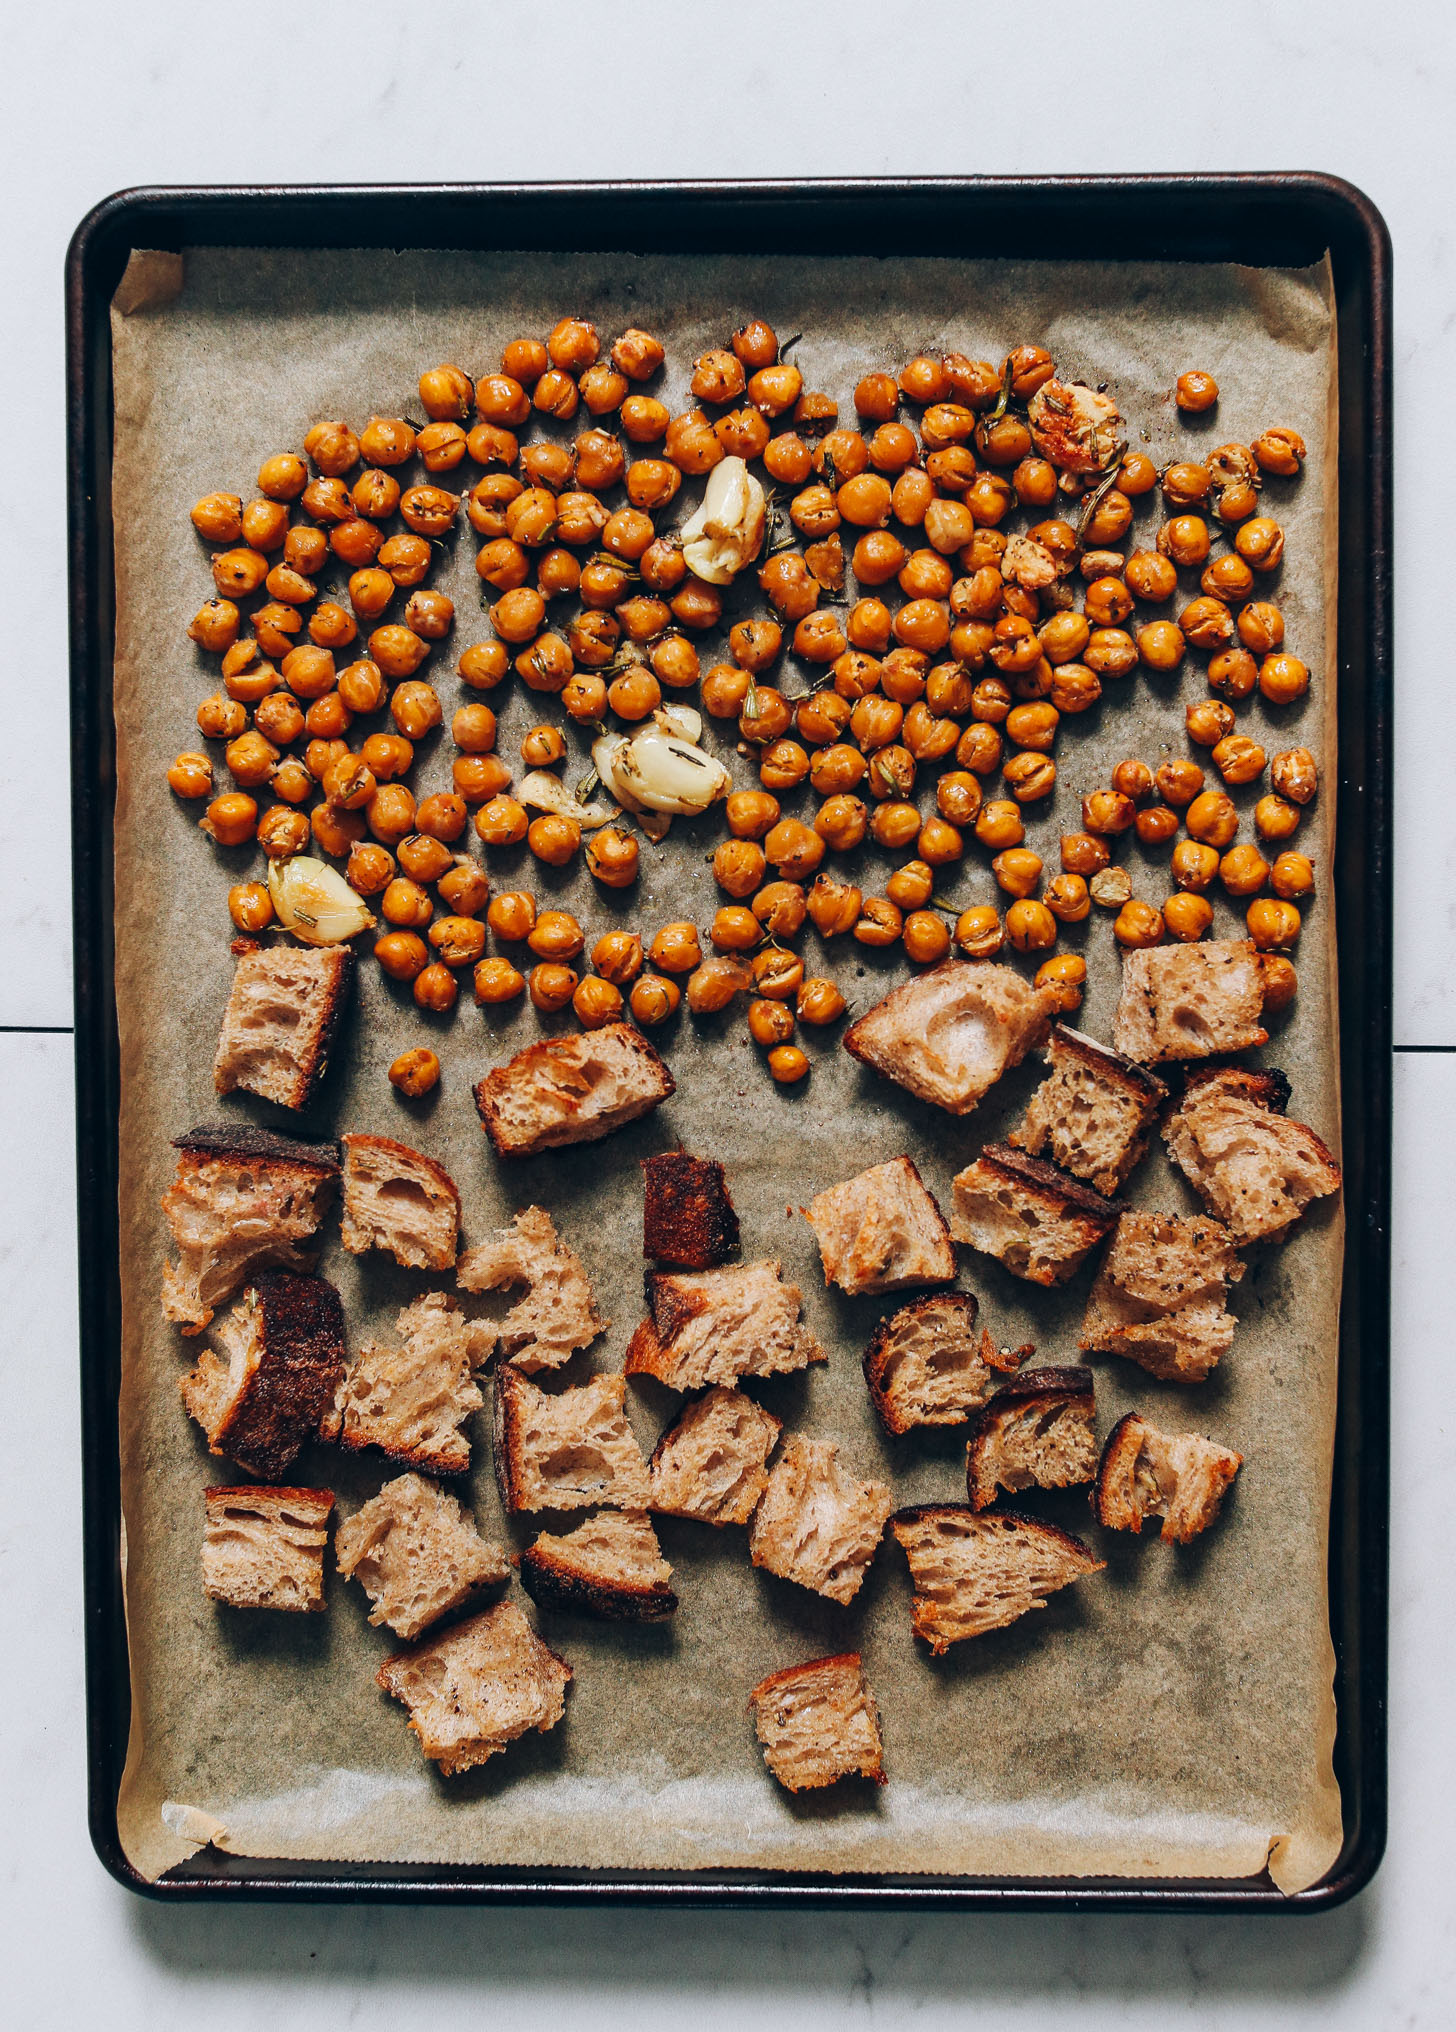 Parchment-lined baking sheet of crusty bread, garlic cloves, and chickpeas